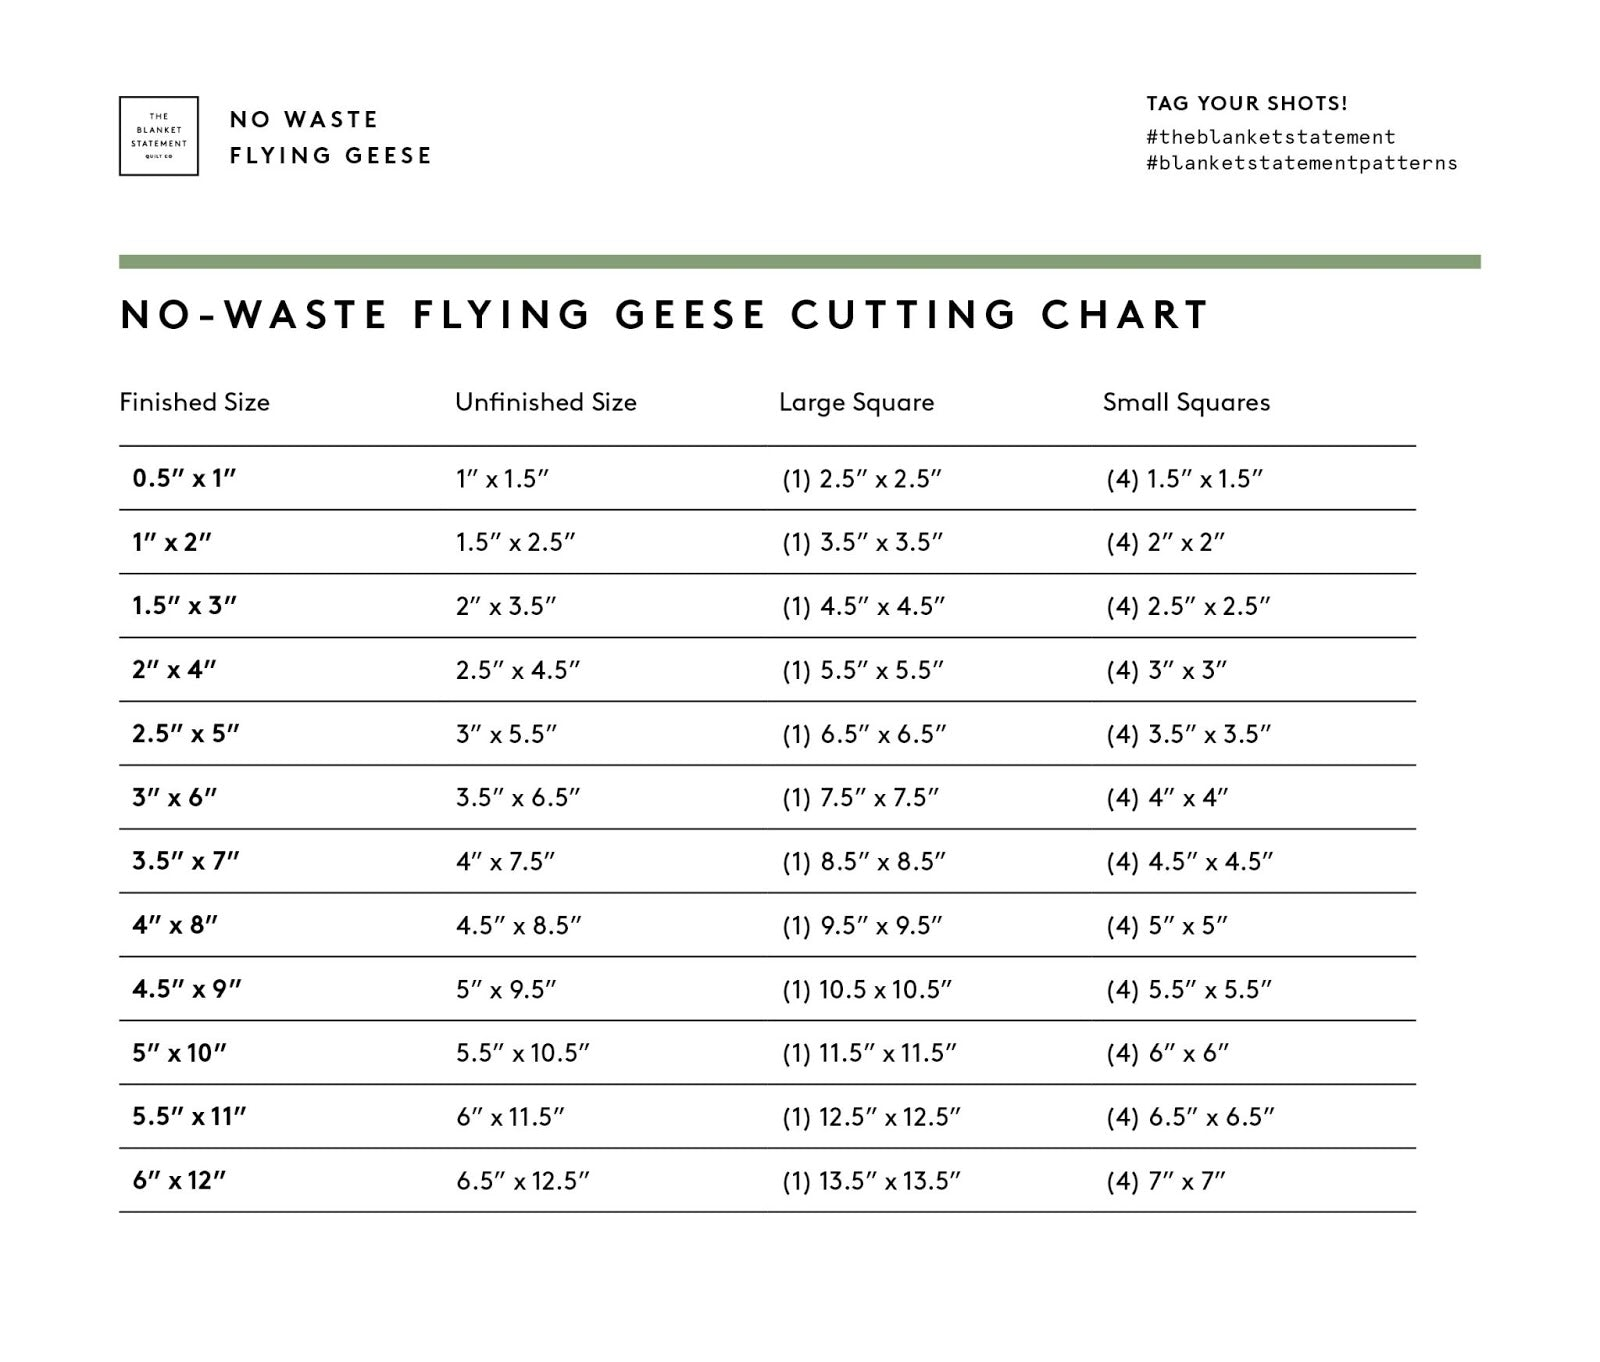 No Waste Flying Geese Chart